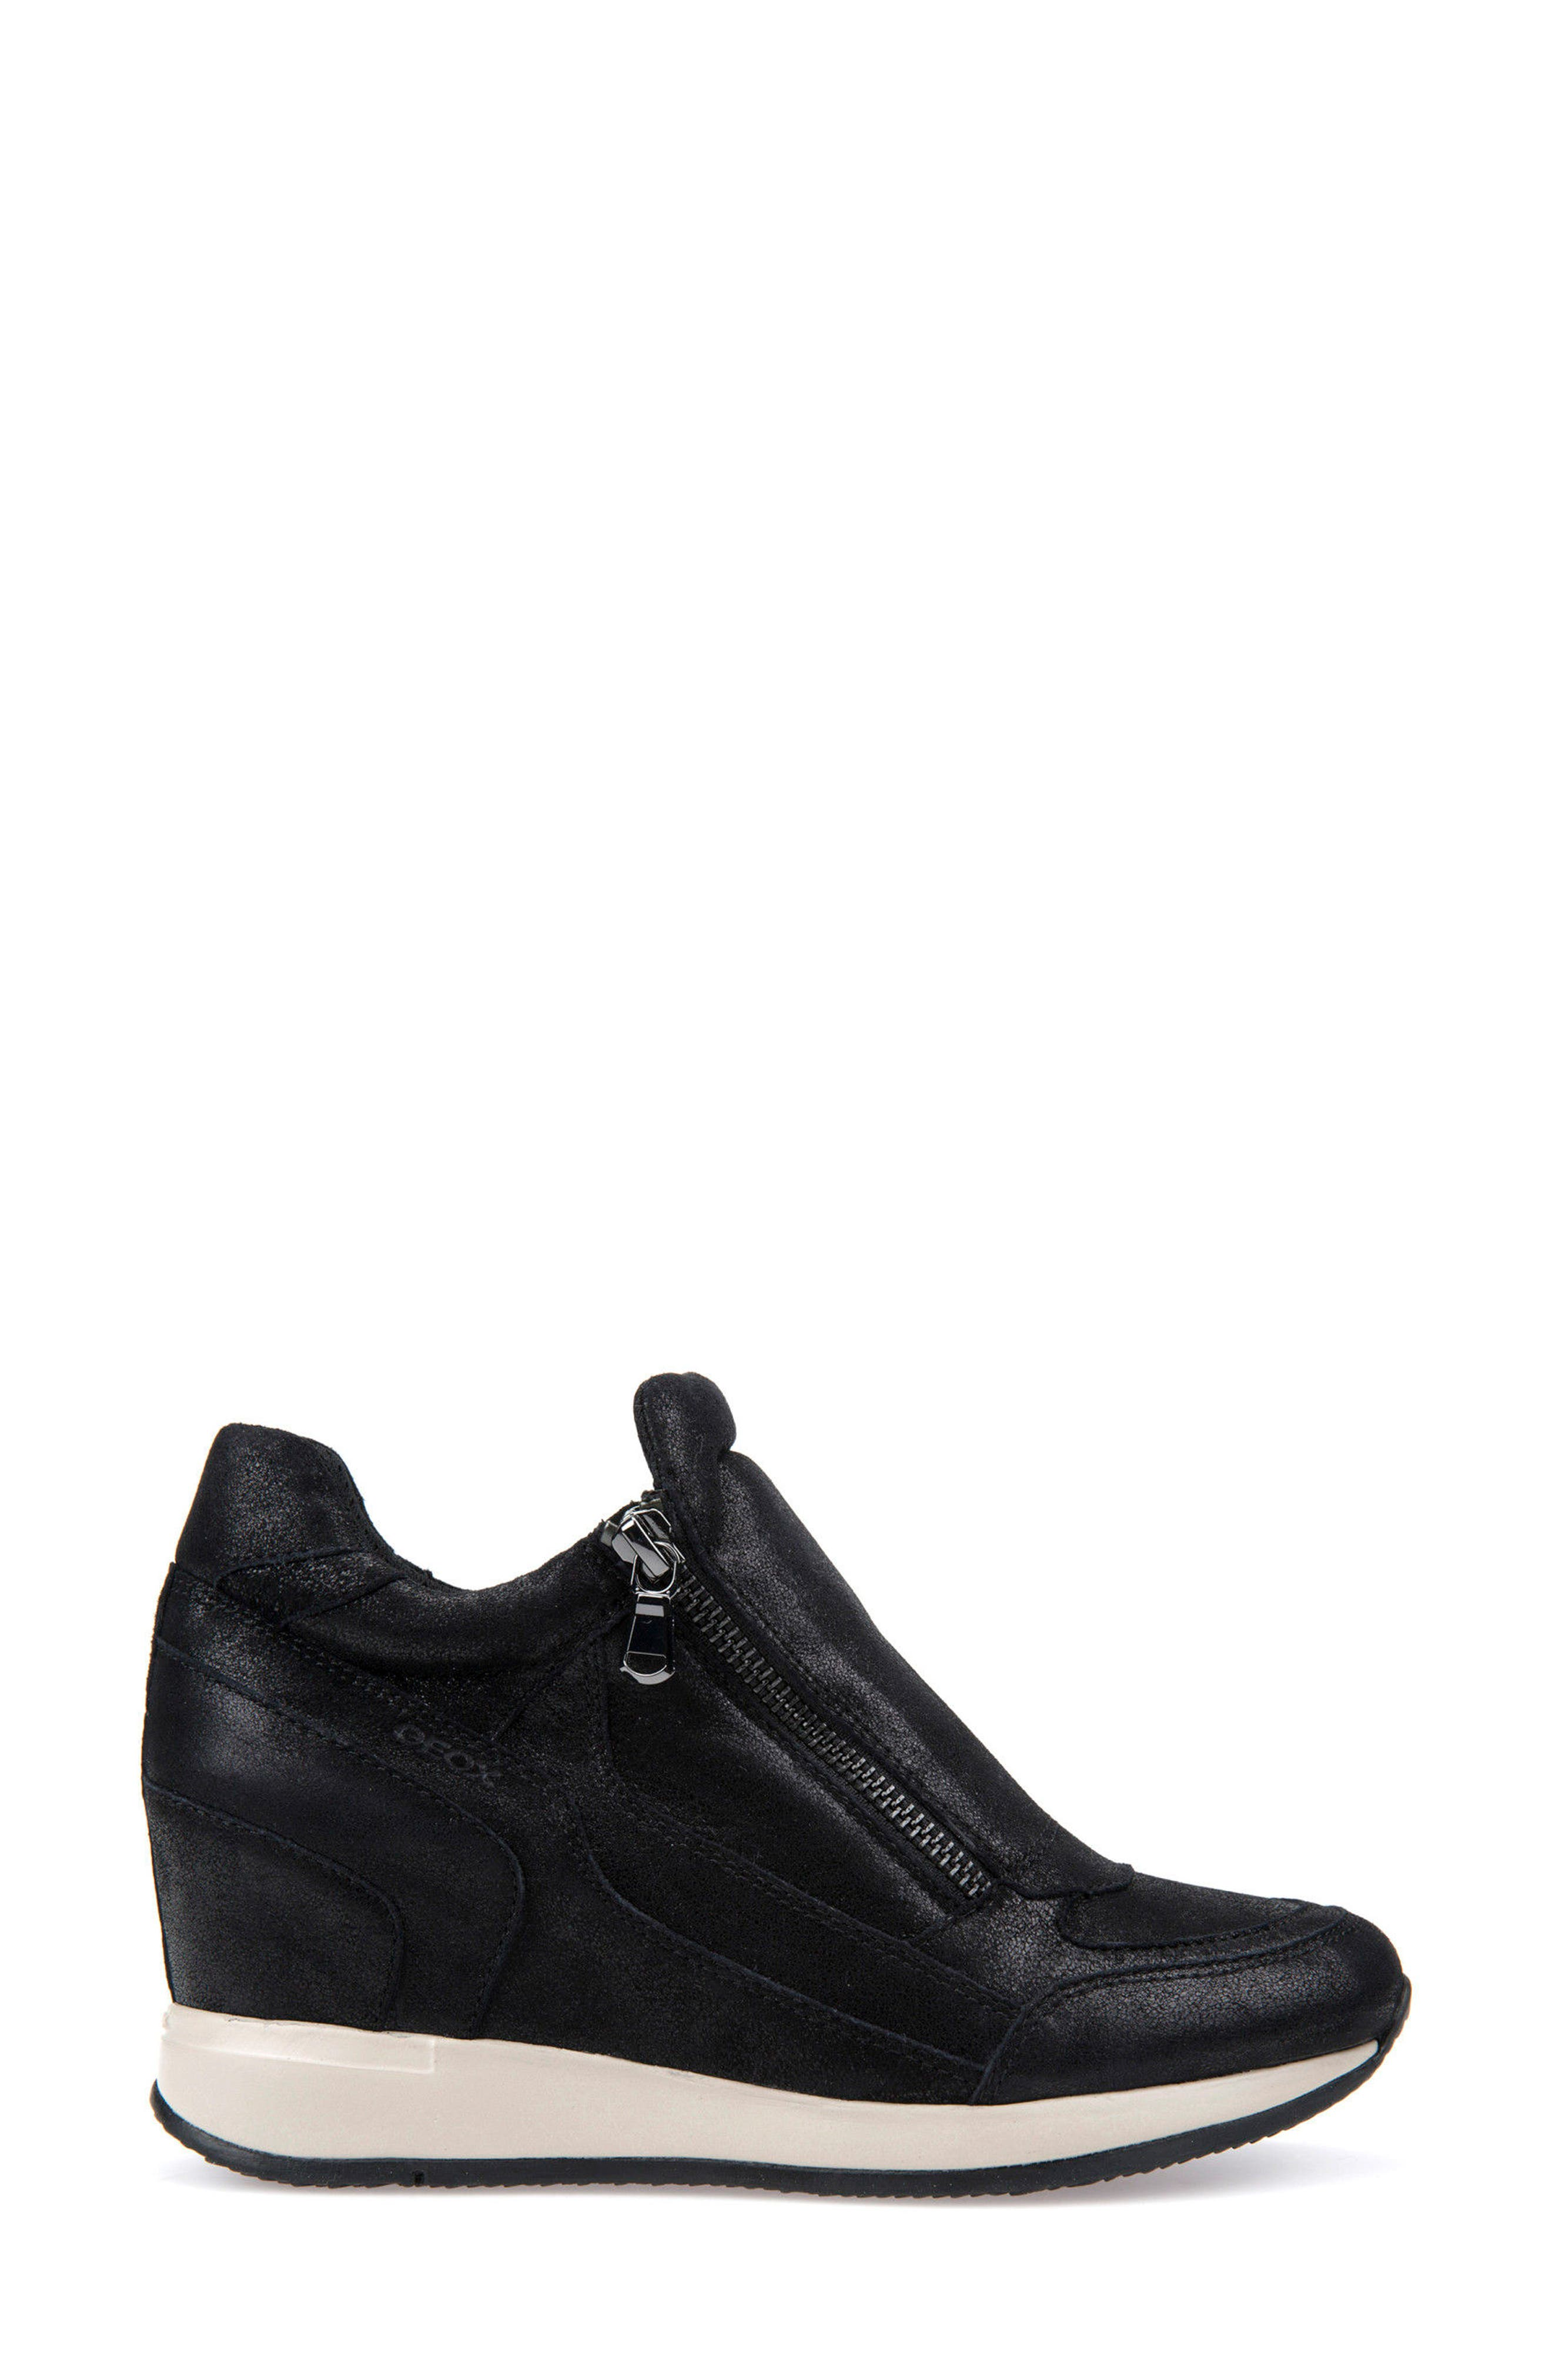 Nydame Wedge Sneaker,                             Alternate thumbnail 3, color,                             001